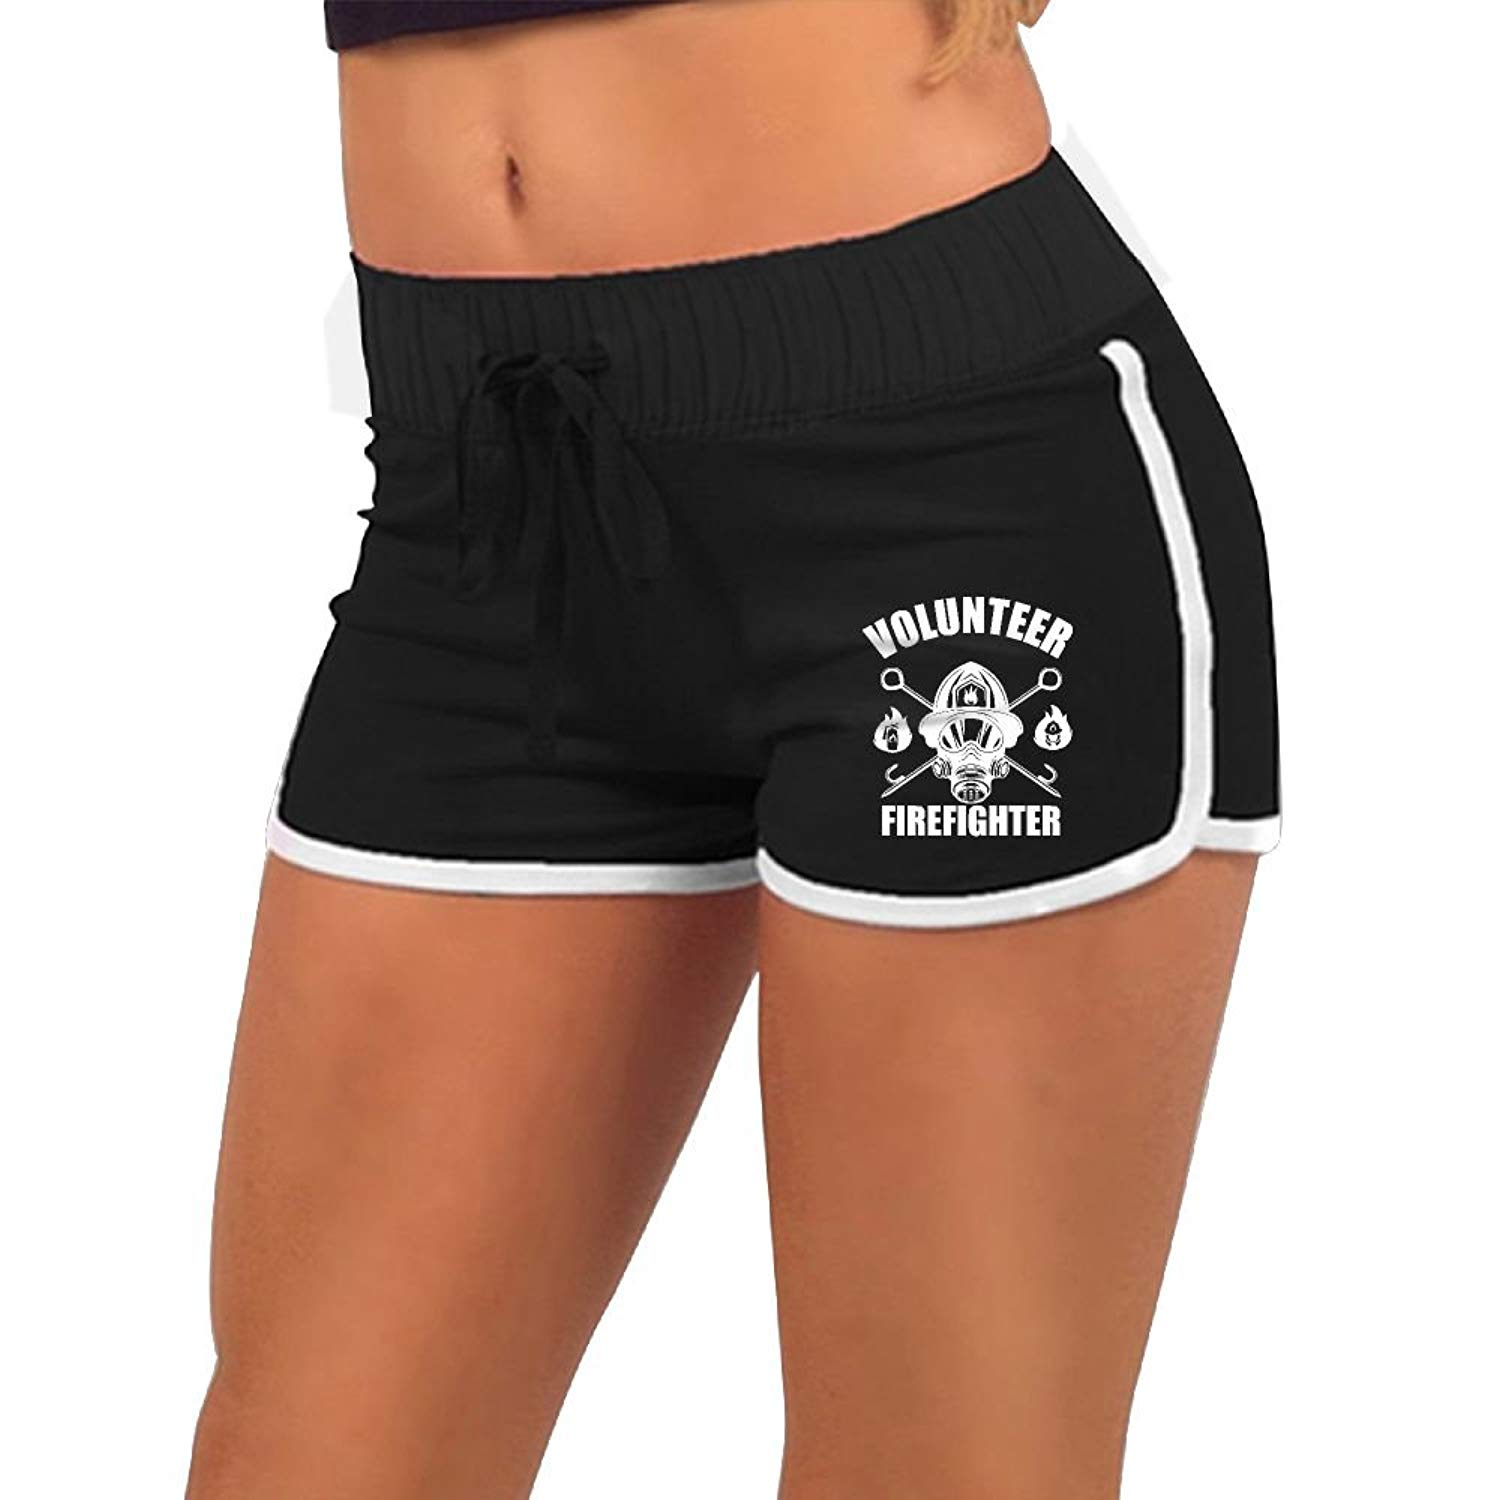 KENYYIOP Volunteer Firefighter Womens Yoga Shorts,Workout Shorts,Summer Pants,Running Shorts,Drawstring Waist Workout Shorts